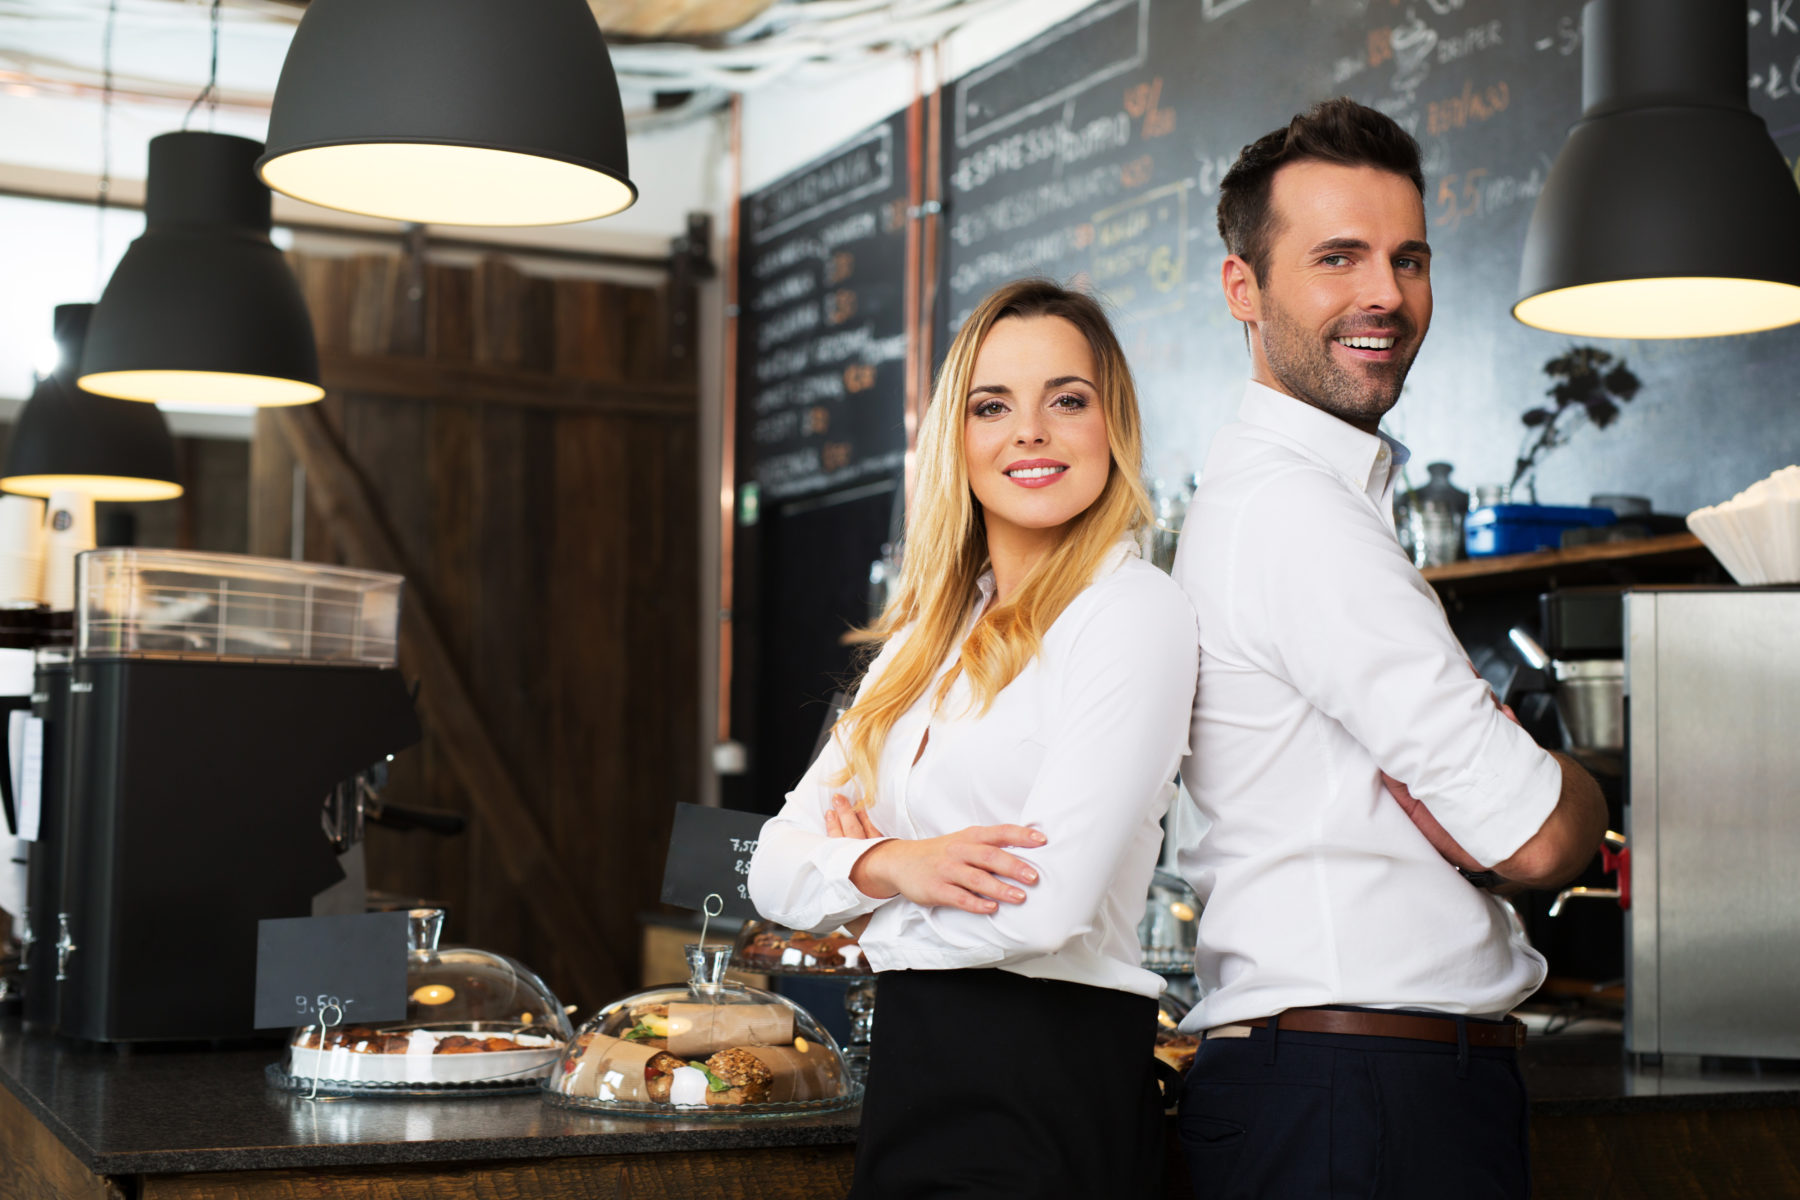 A New Start  – with franchising